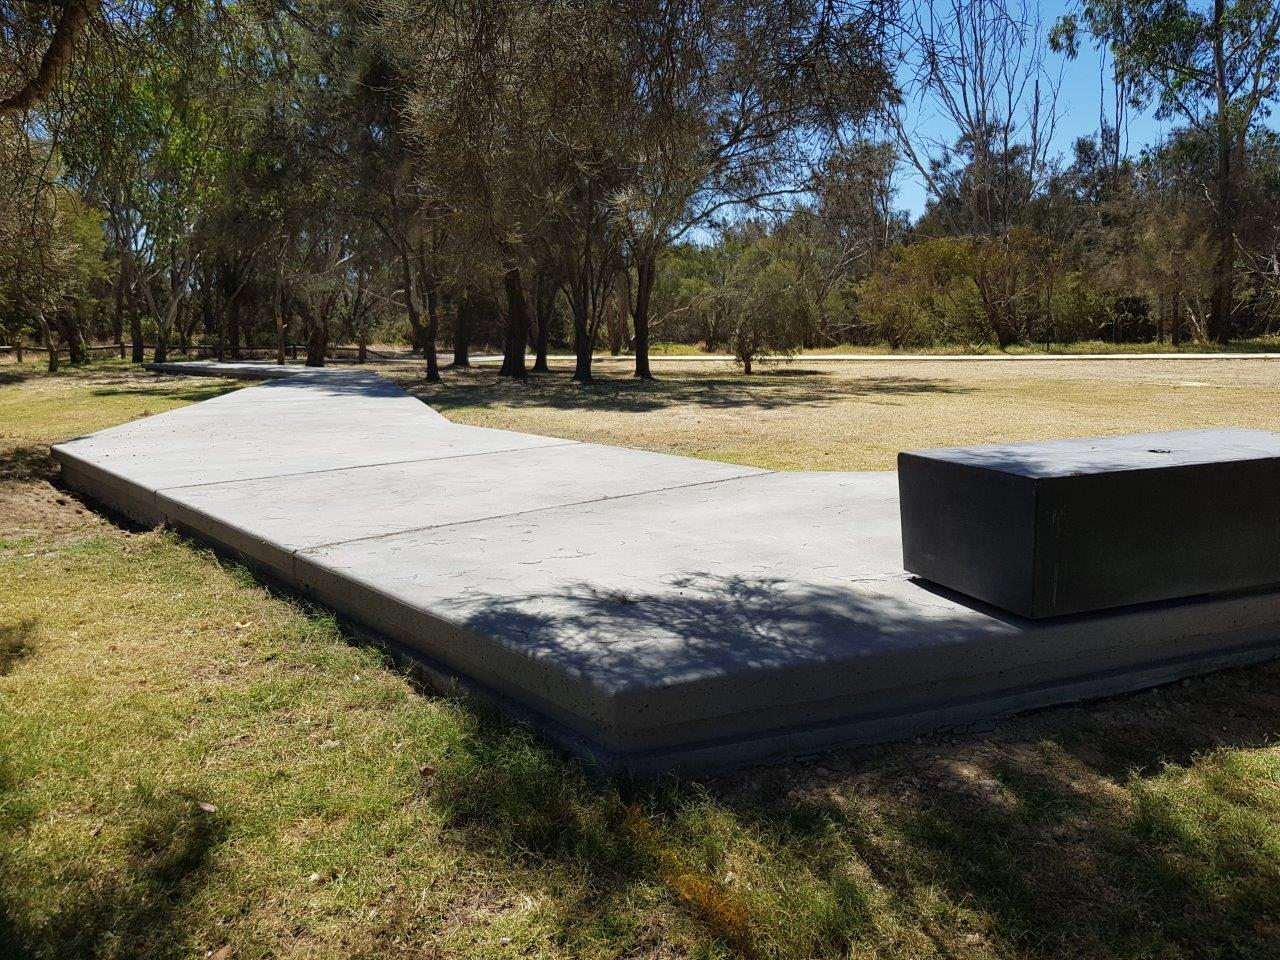 Node 4 (Theme: Sikh Spirit) - Bench to be completed and the largest interpretative panels telling the great Australian Sikh story to be added including a timeline over the coming month or so.